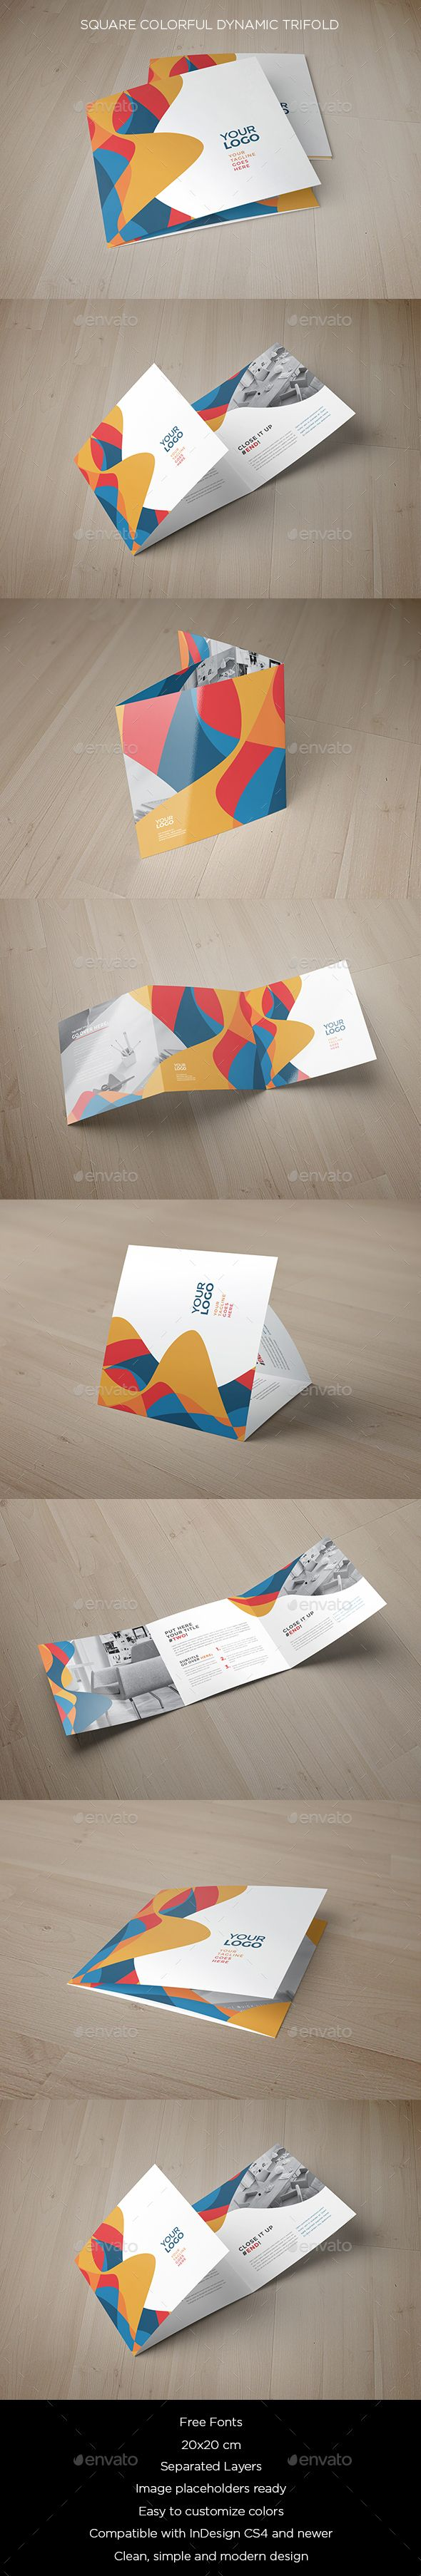 Square Colorful Dynamic Trifold Brochure Template InDesign INDD #design Download: http://graphicriver.net/item/square-colorful-dynamic-trifold/13628157?ref=ksioks